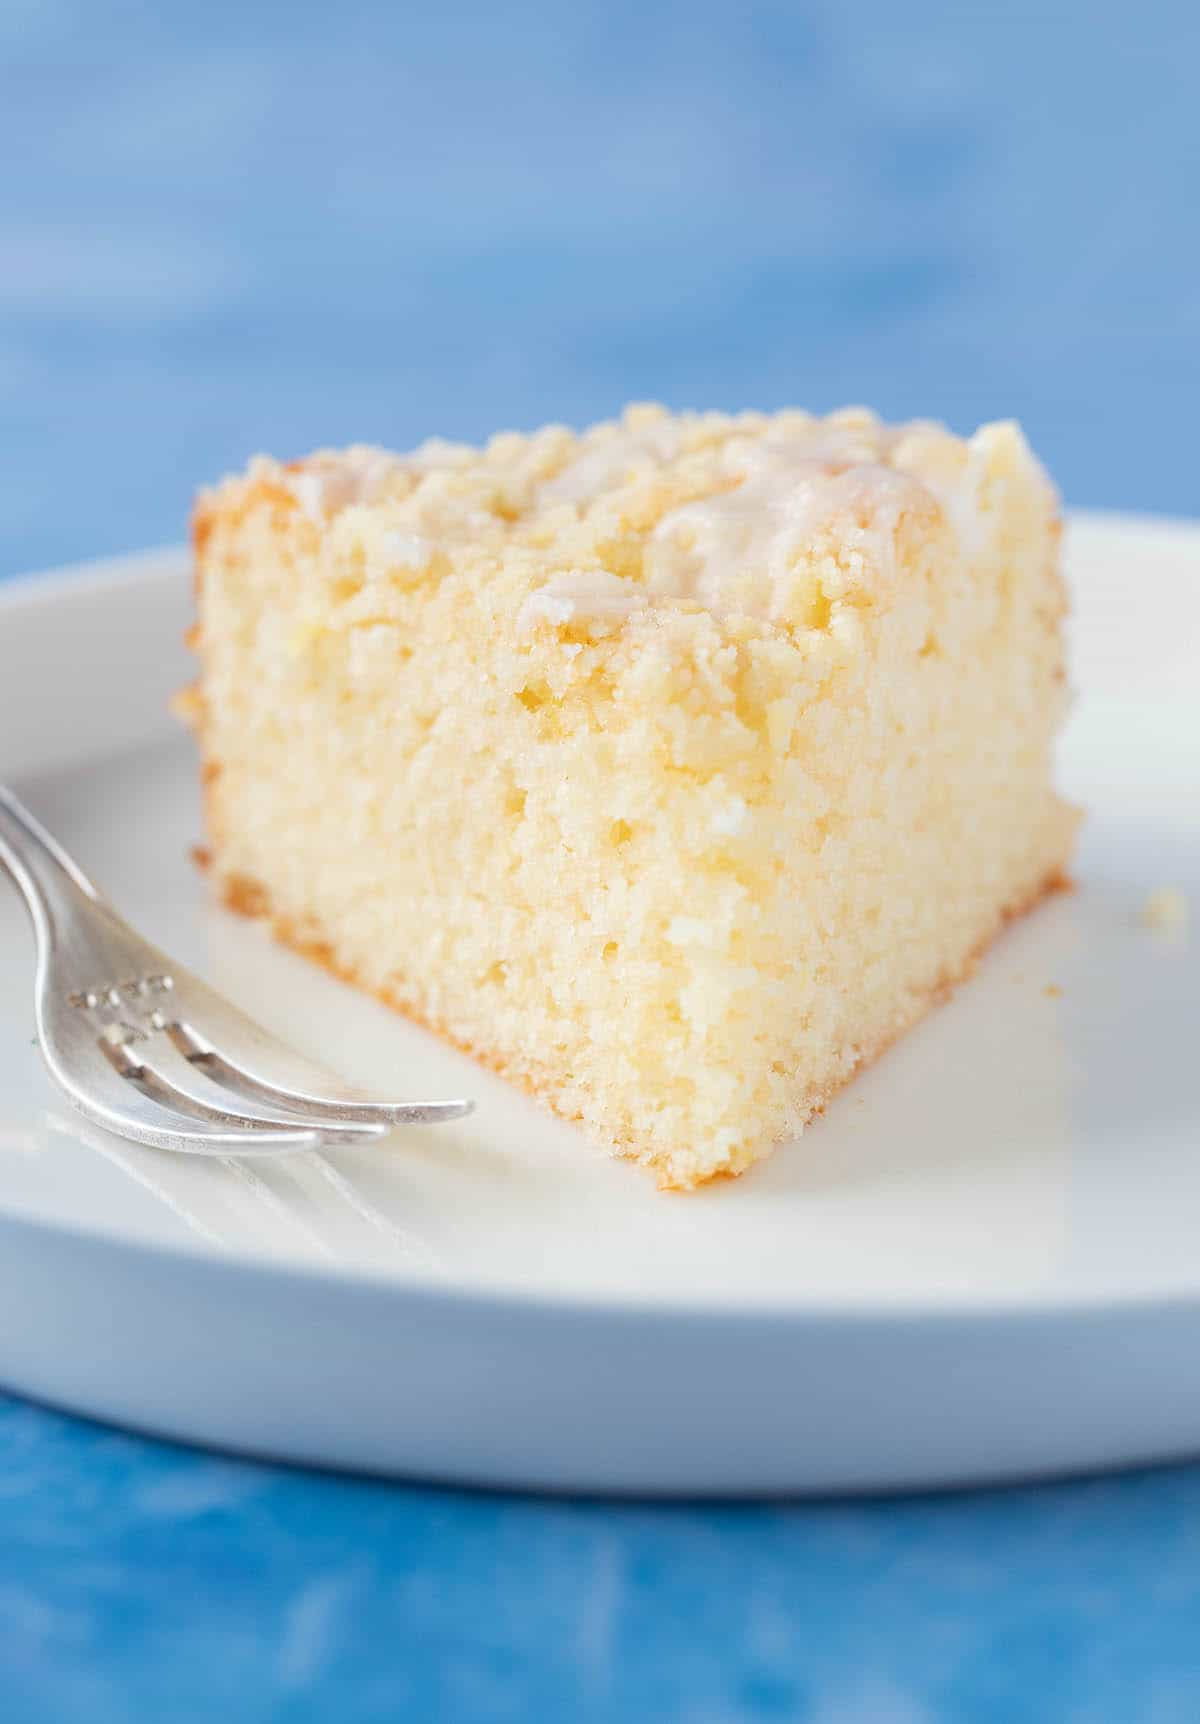 Close up of a big slice of Lemon Crumb Cake on a white plate